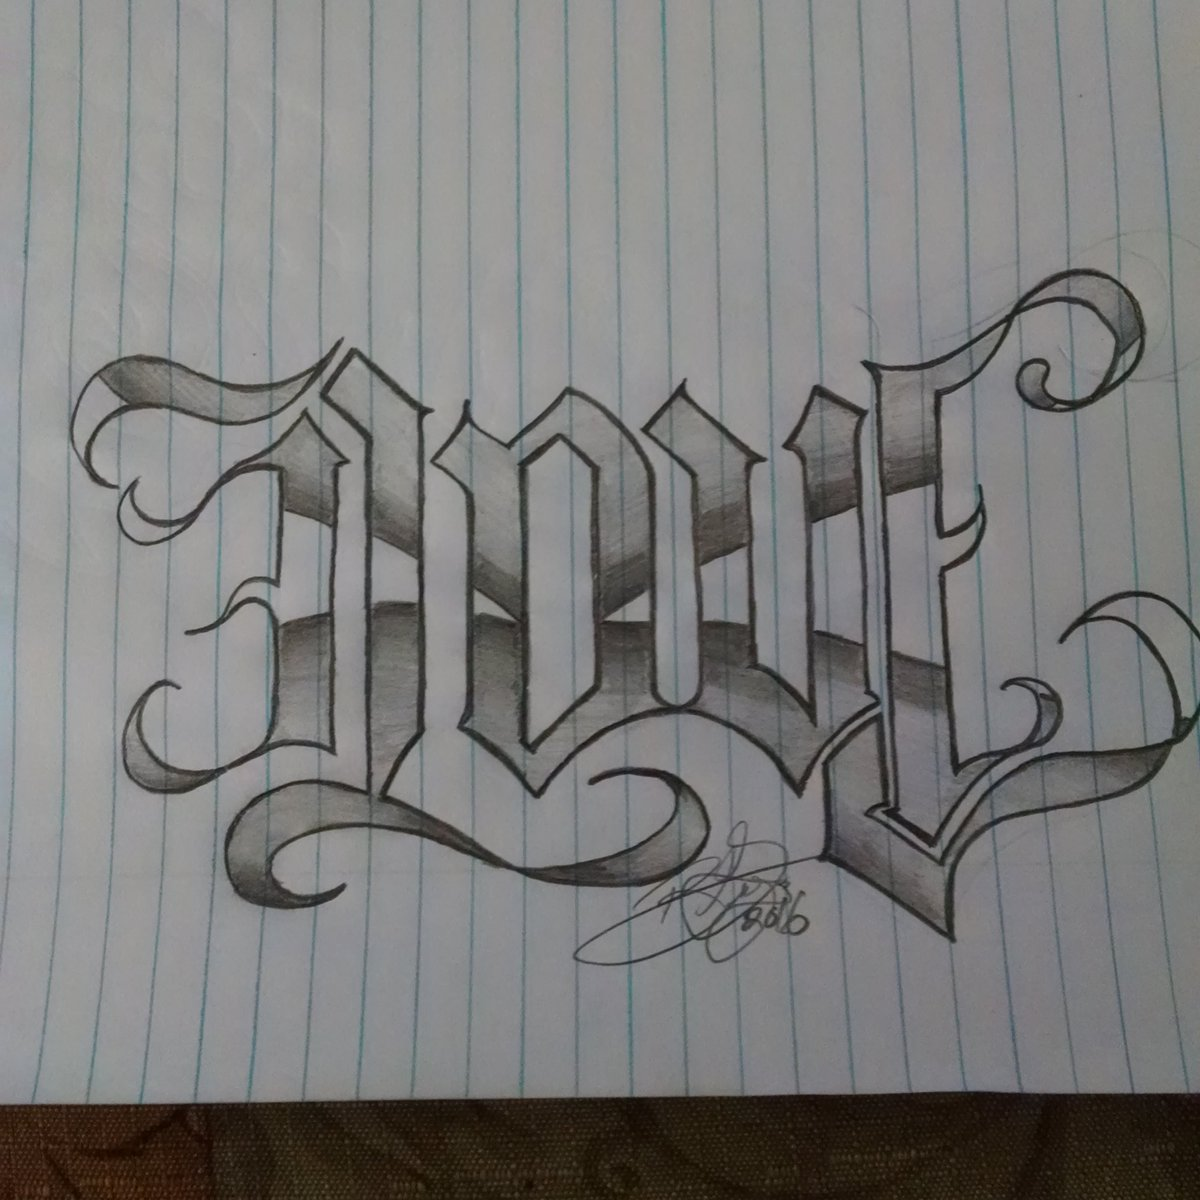 Brian Griggs On Twitter Love One Word Art Coloradosprings Love Sketchartist Working On Getting My Technique Back Comment